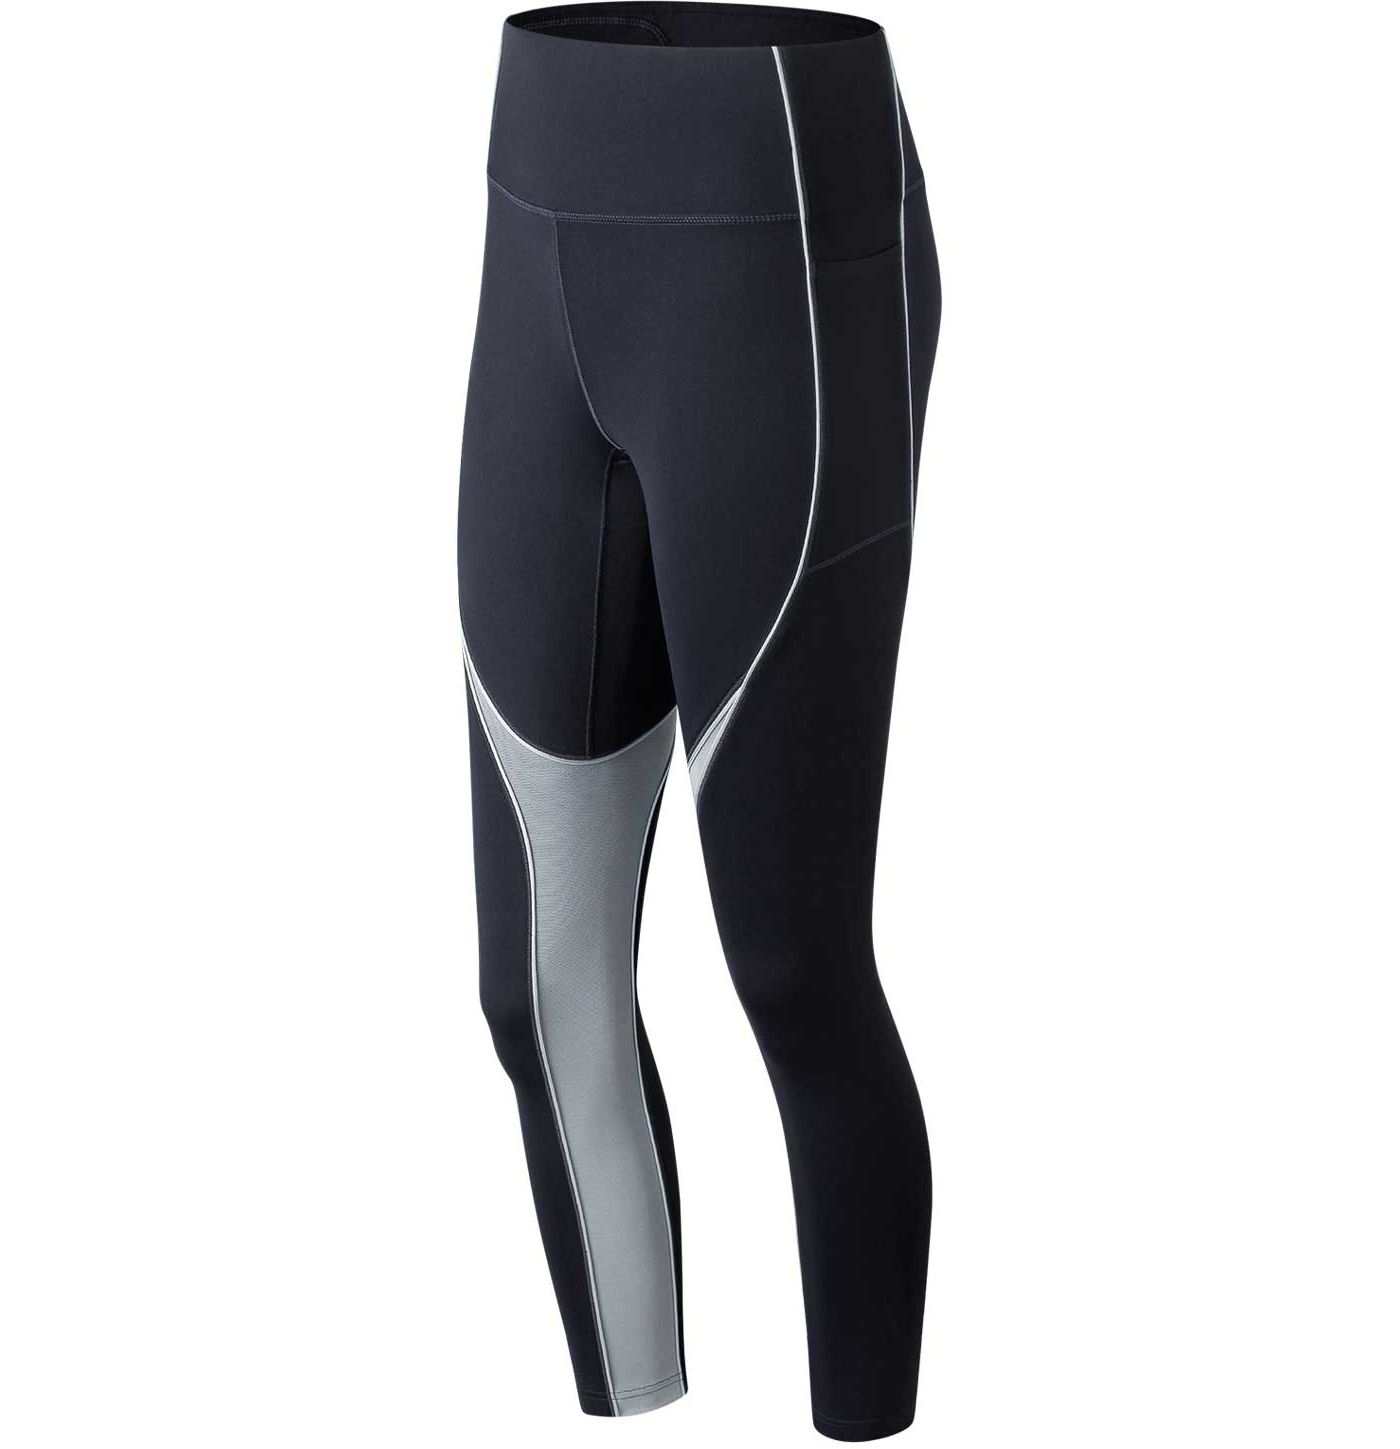 New Balance Women's Energized Tights